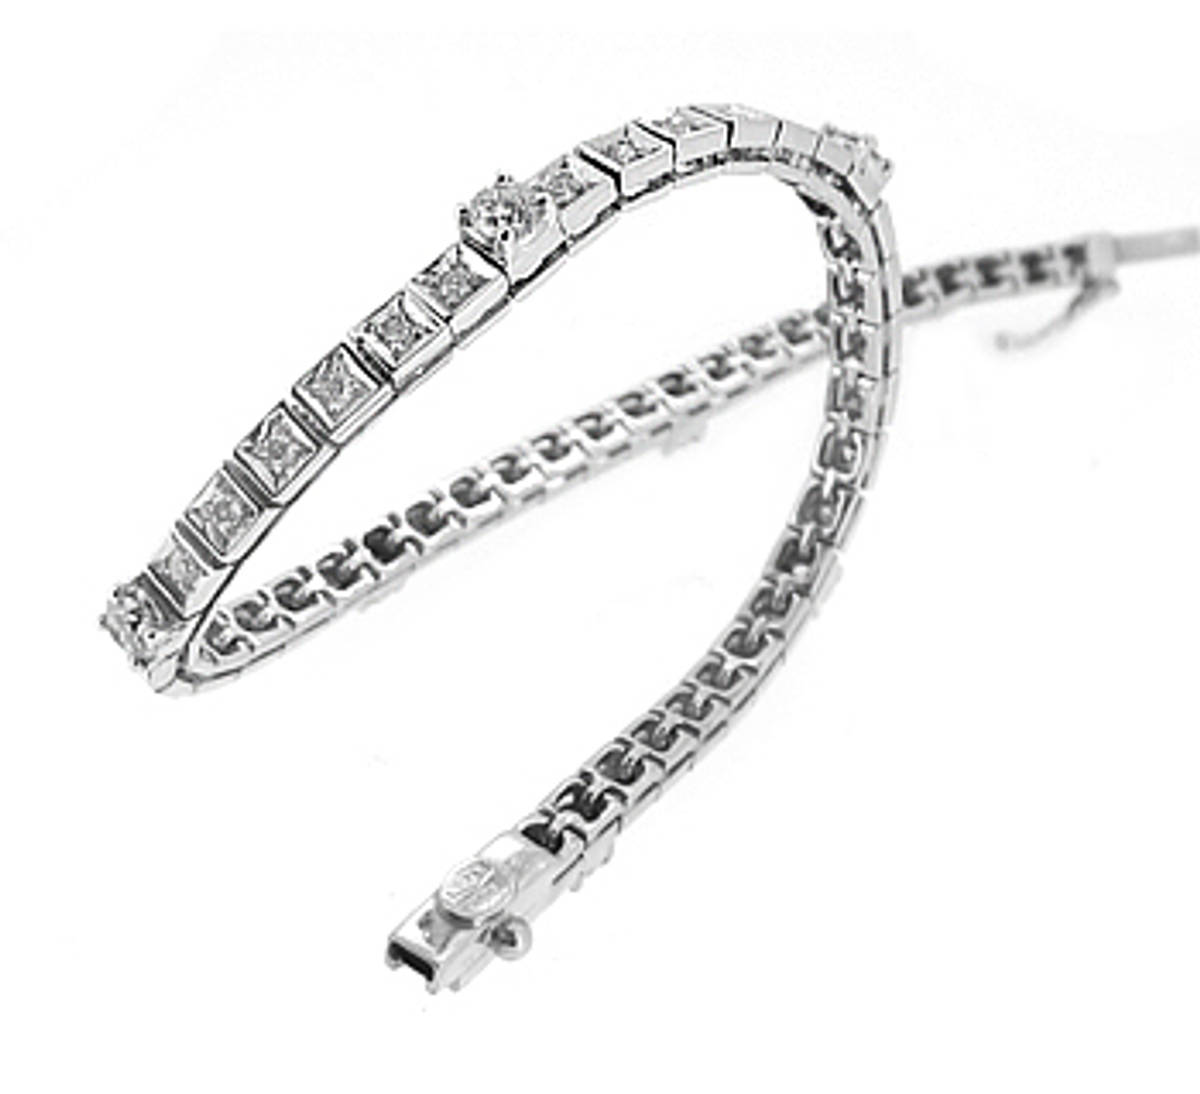 18k white gold brilliant cut diamond line braceletDETAILStotal diamond weight 1.95cts Made in the Ireland